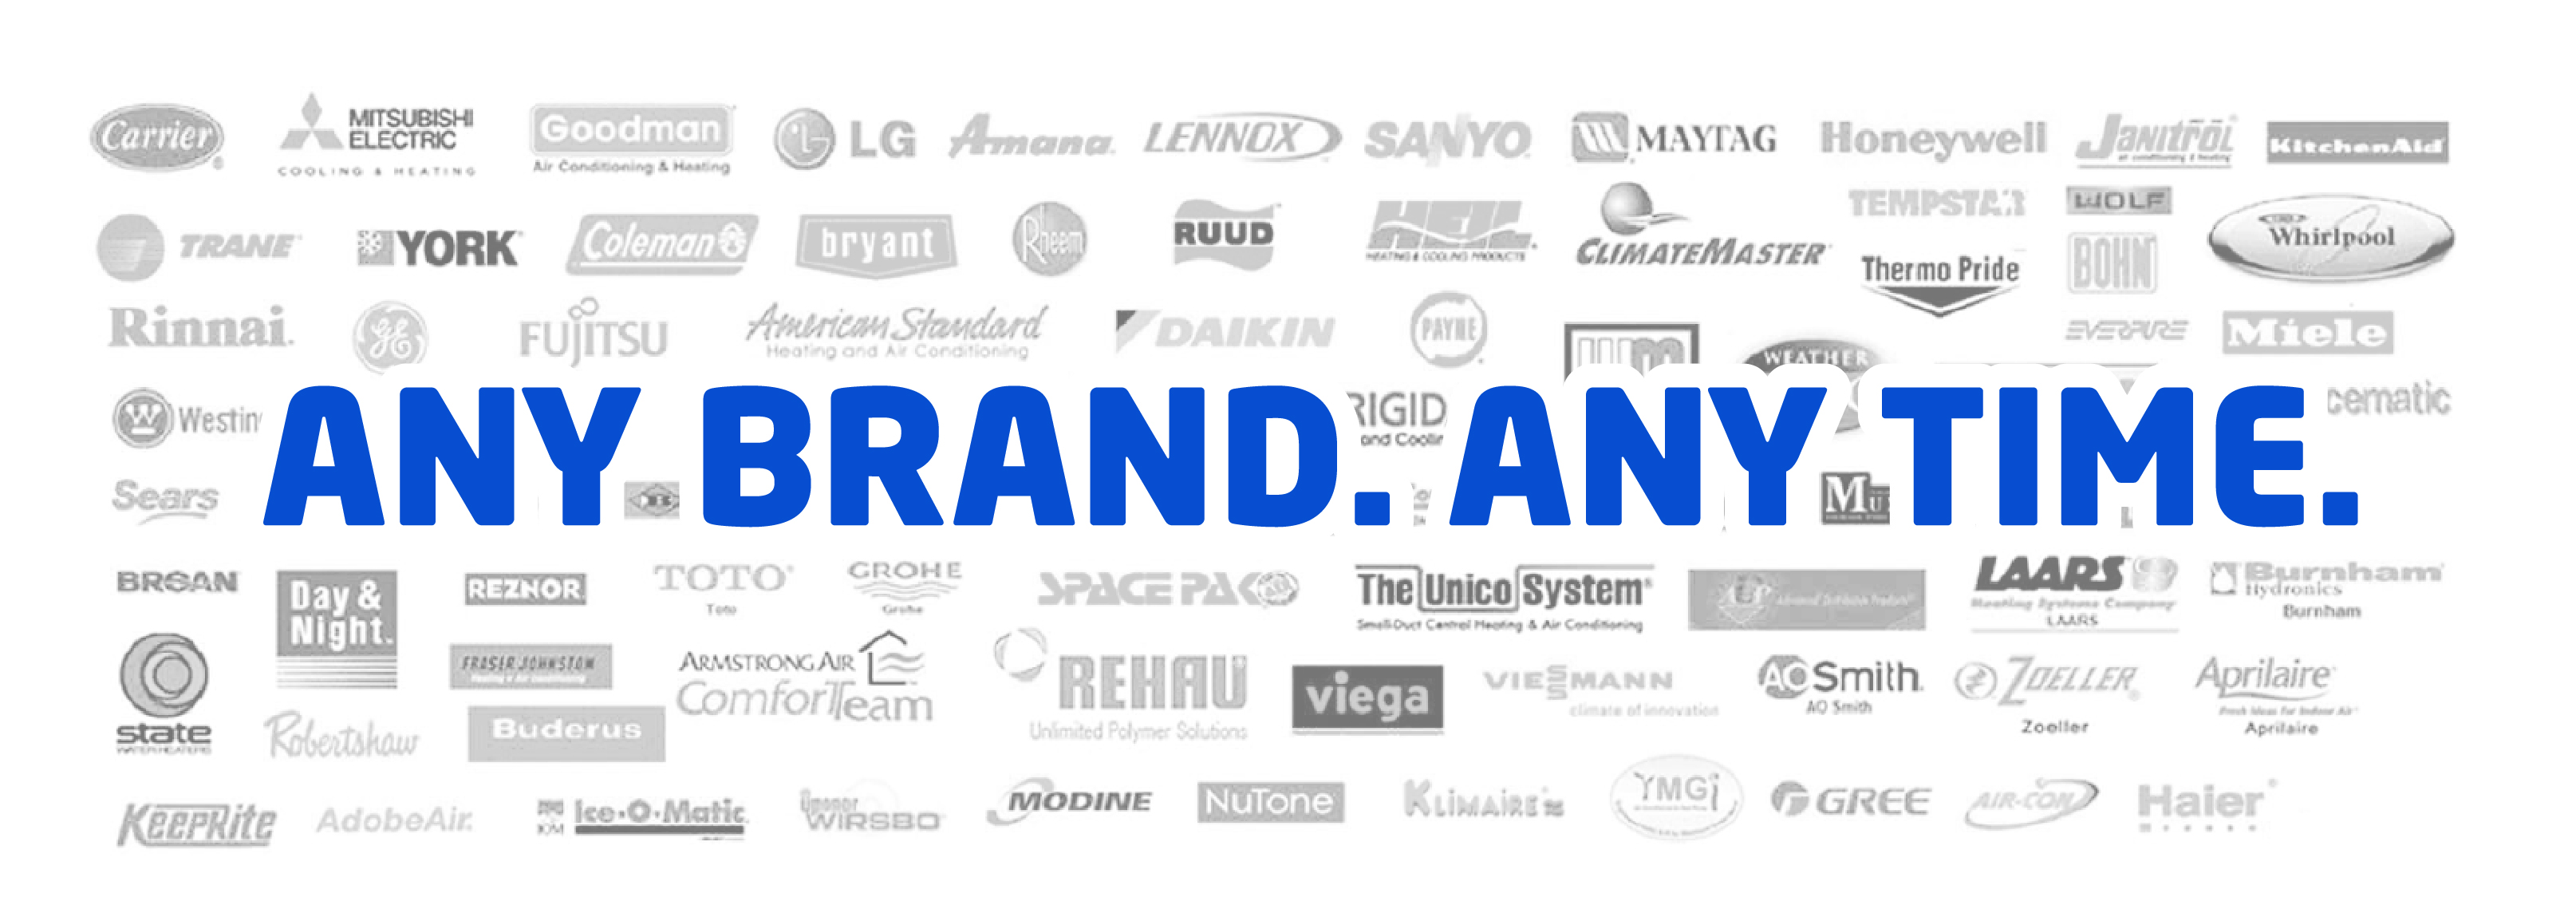 Any Brand Any Time